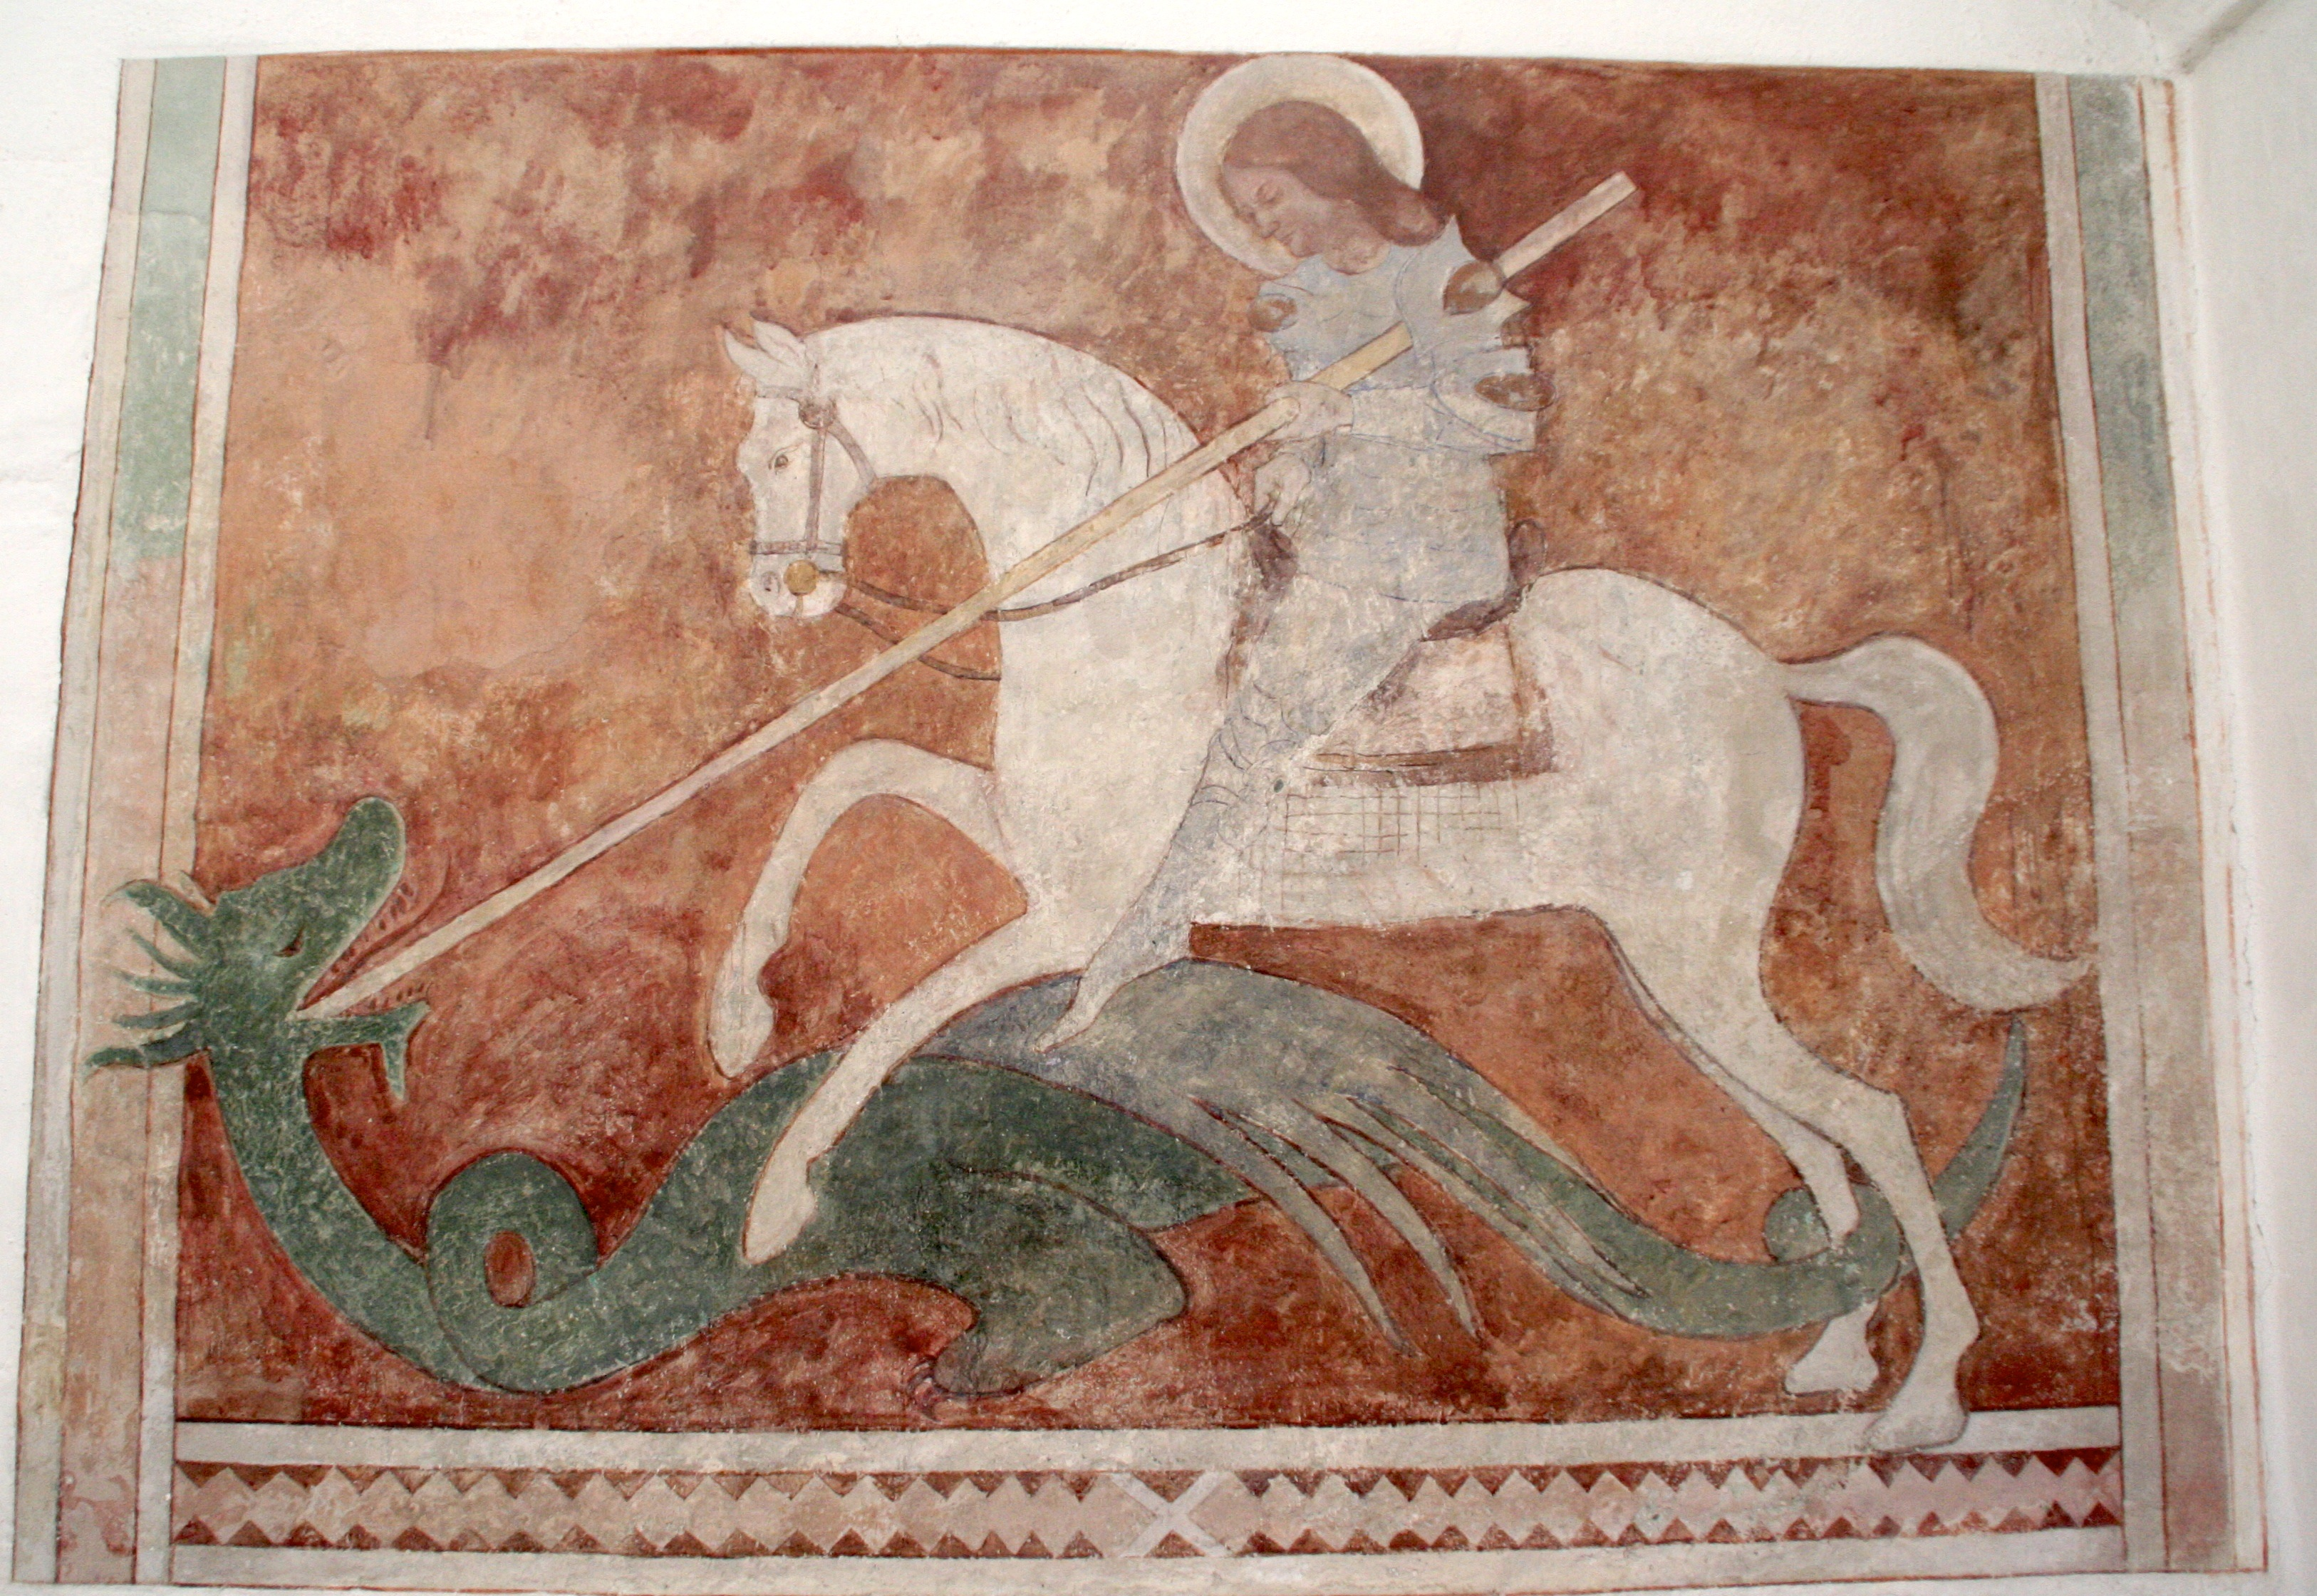 St. George and the Dragon art